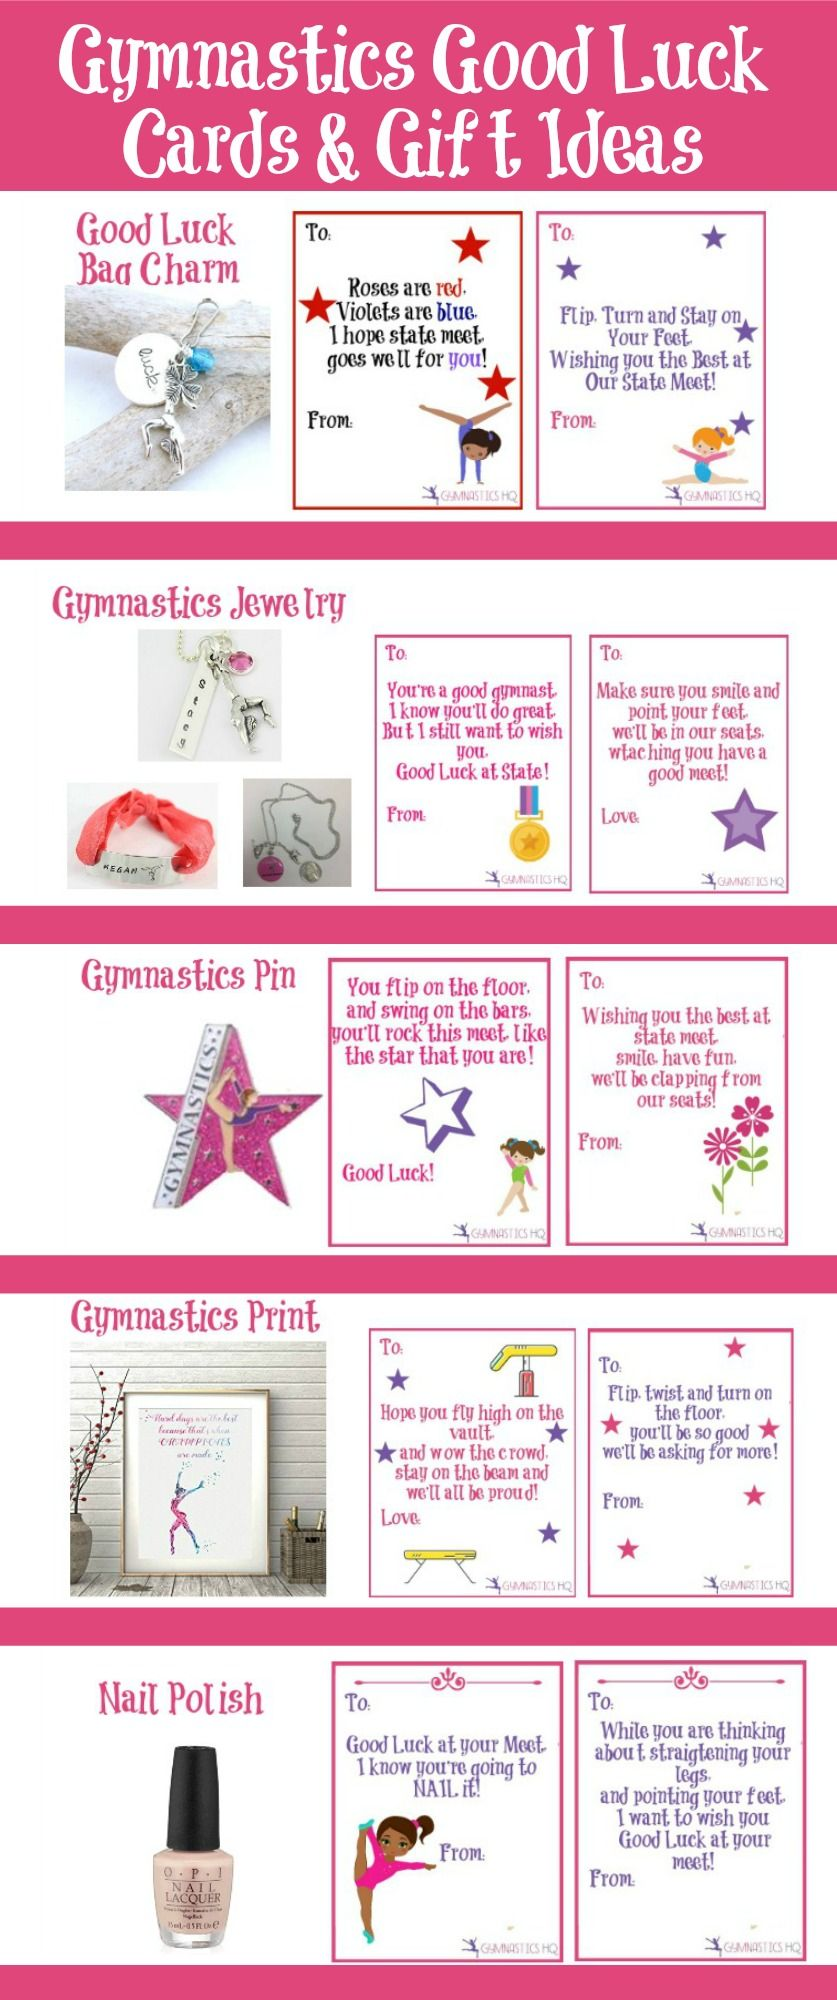 Gymnastics Good Luck Gift Ideas Along With Free Printable Good Luck Cards  Good Luck Cards To Print